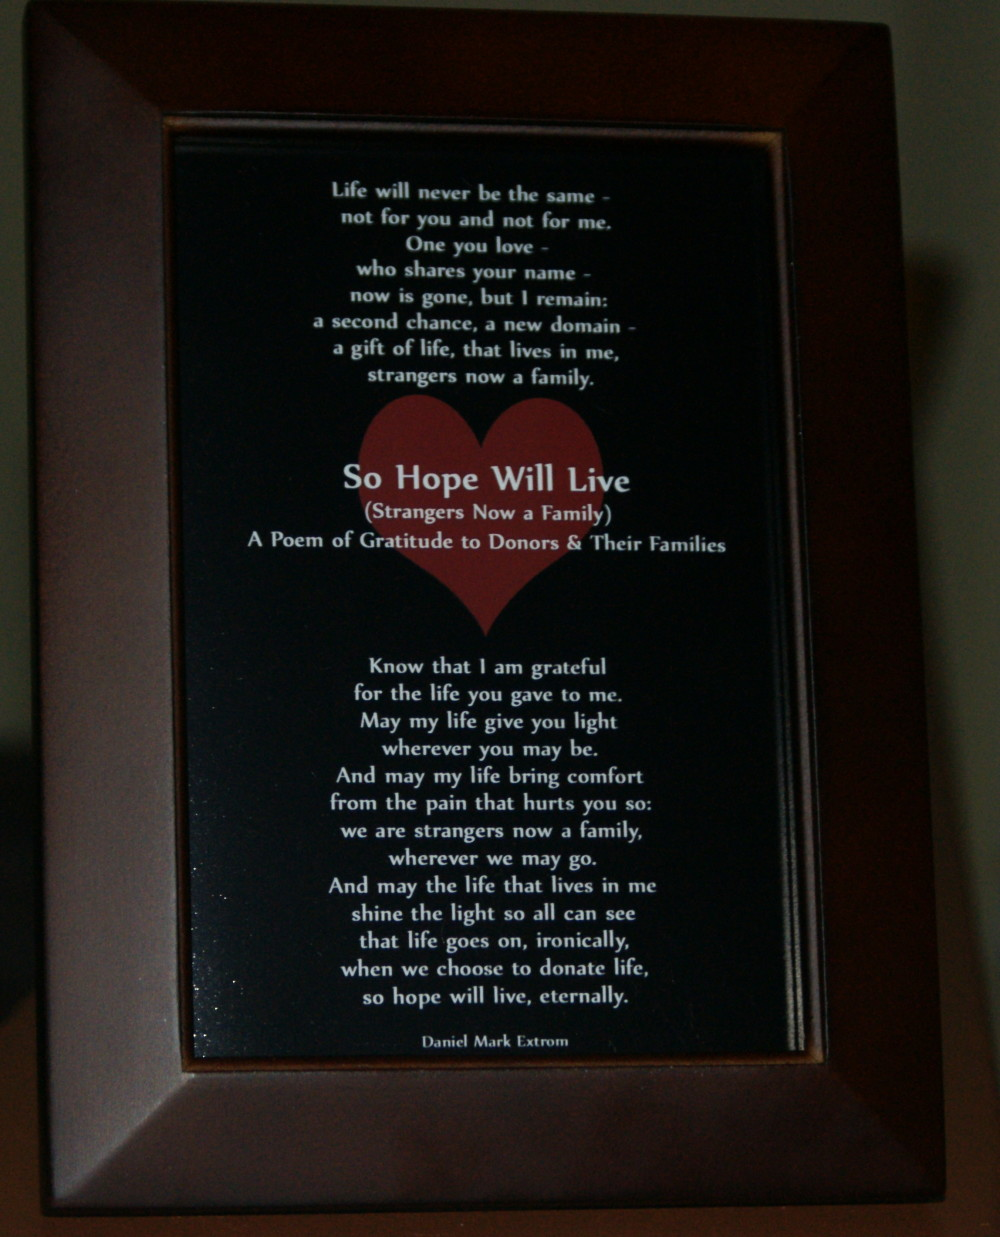 So Hope Will Live Brown Frame 4x6 Donate Life!